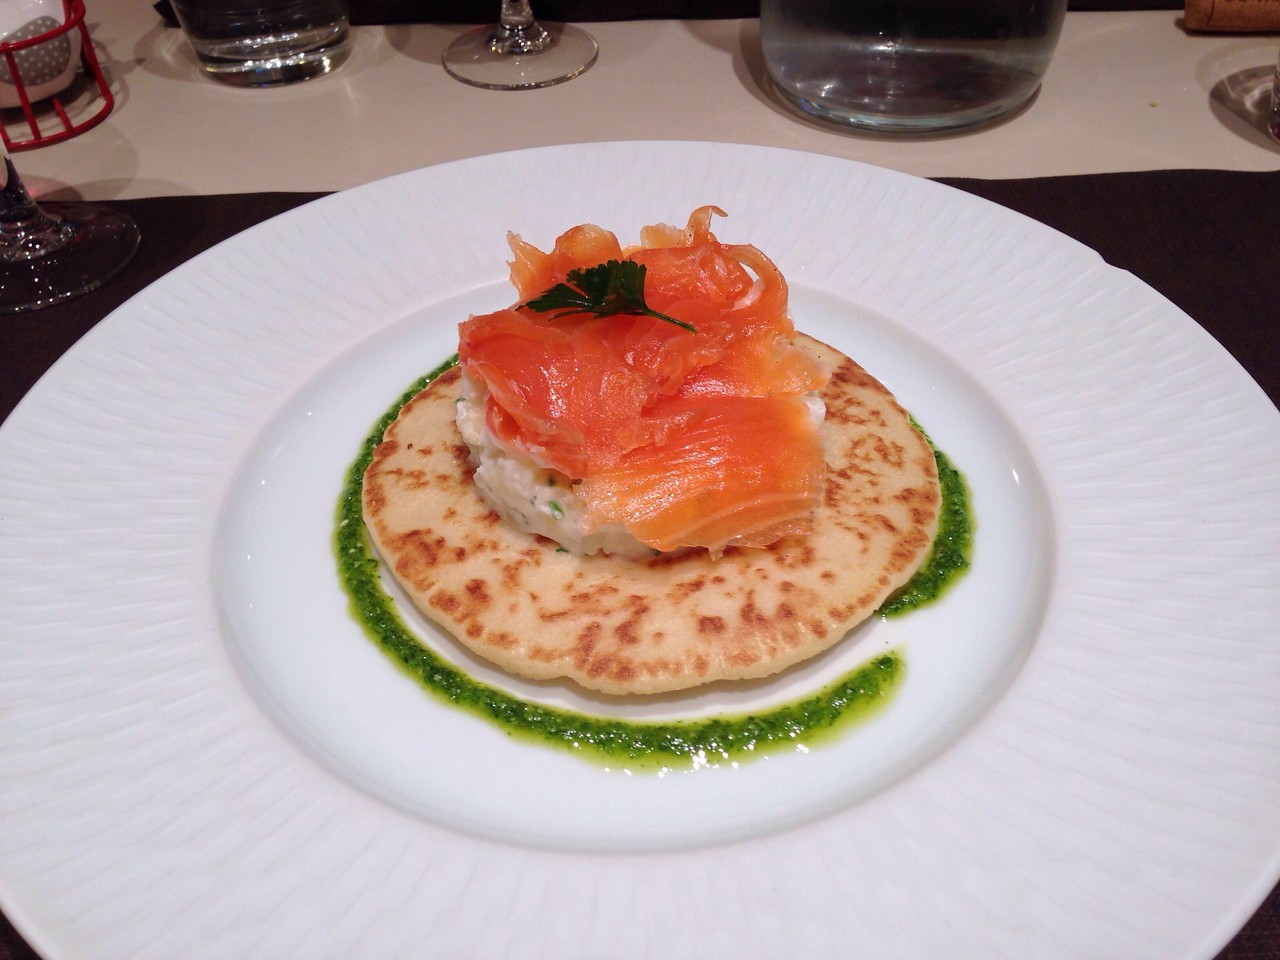 18/09/2017<br /> Dinner!! I had a fancy salmon entre on a bed of mini potato salad an light, fluffy pancake.